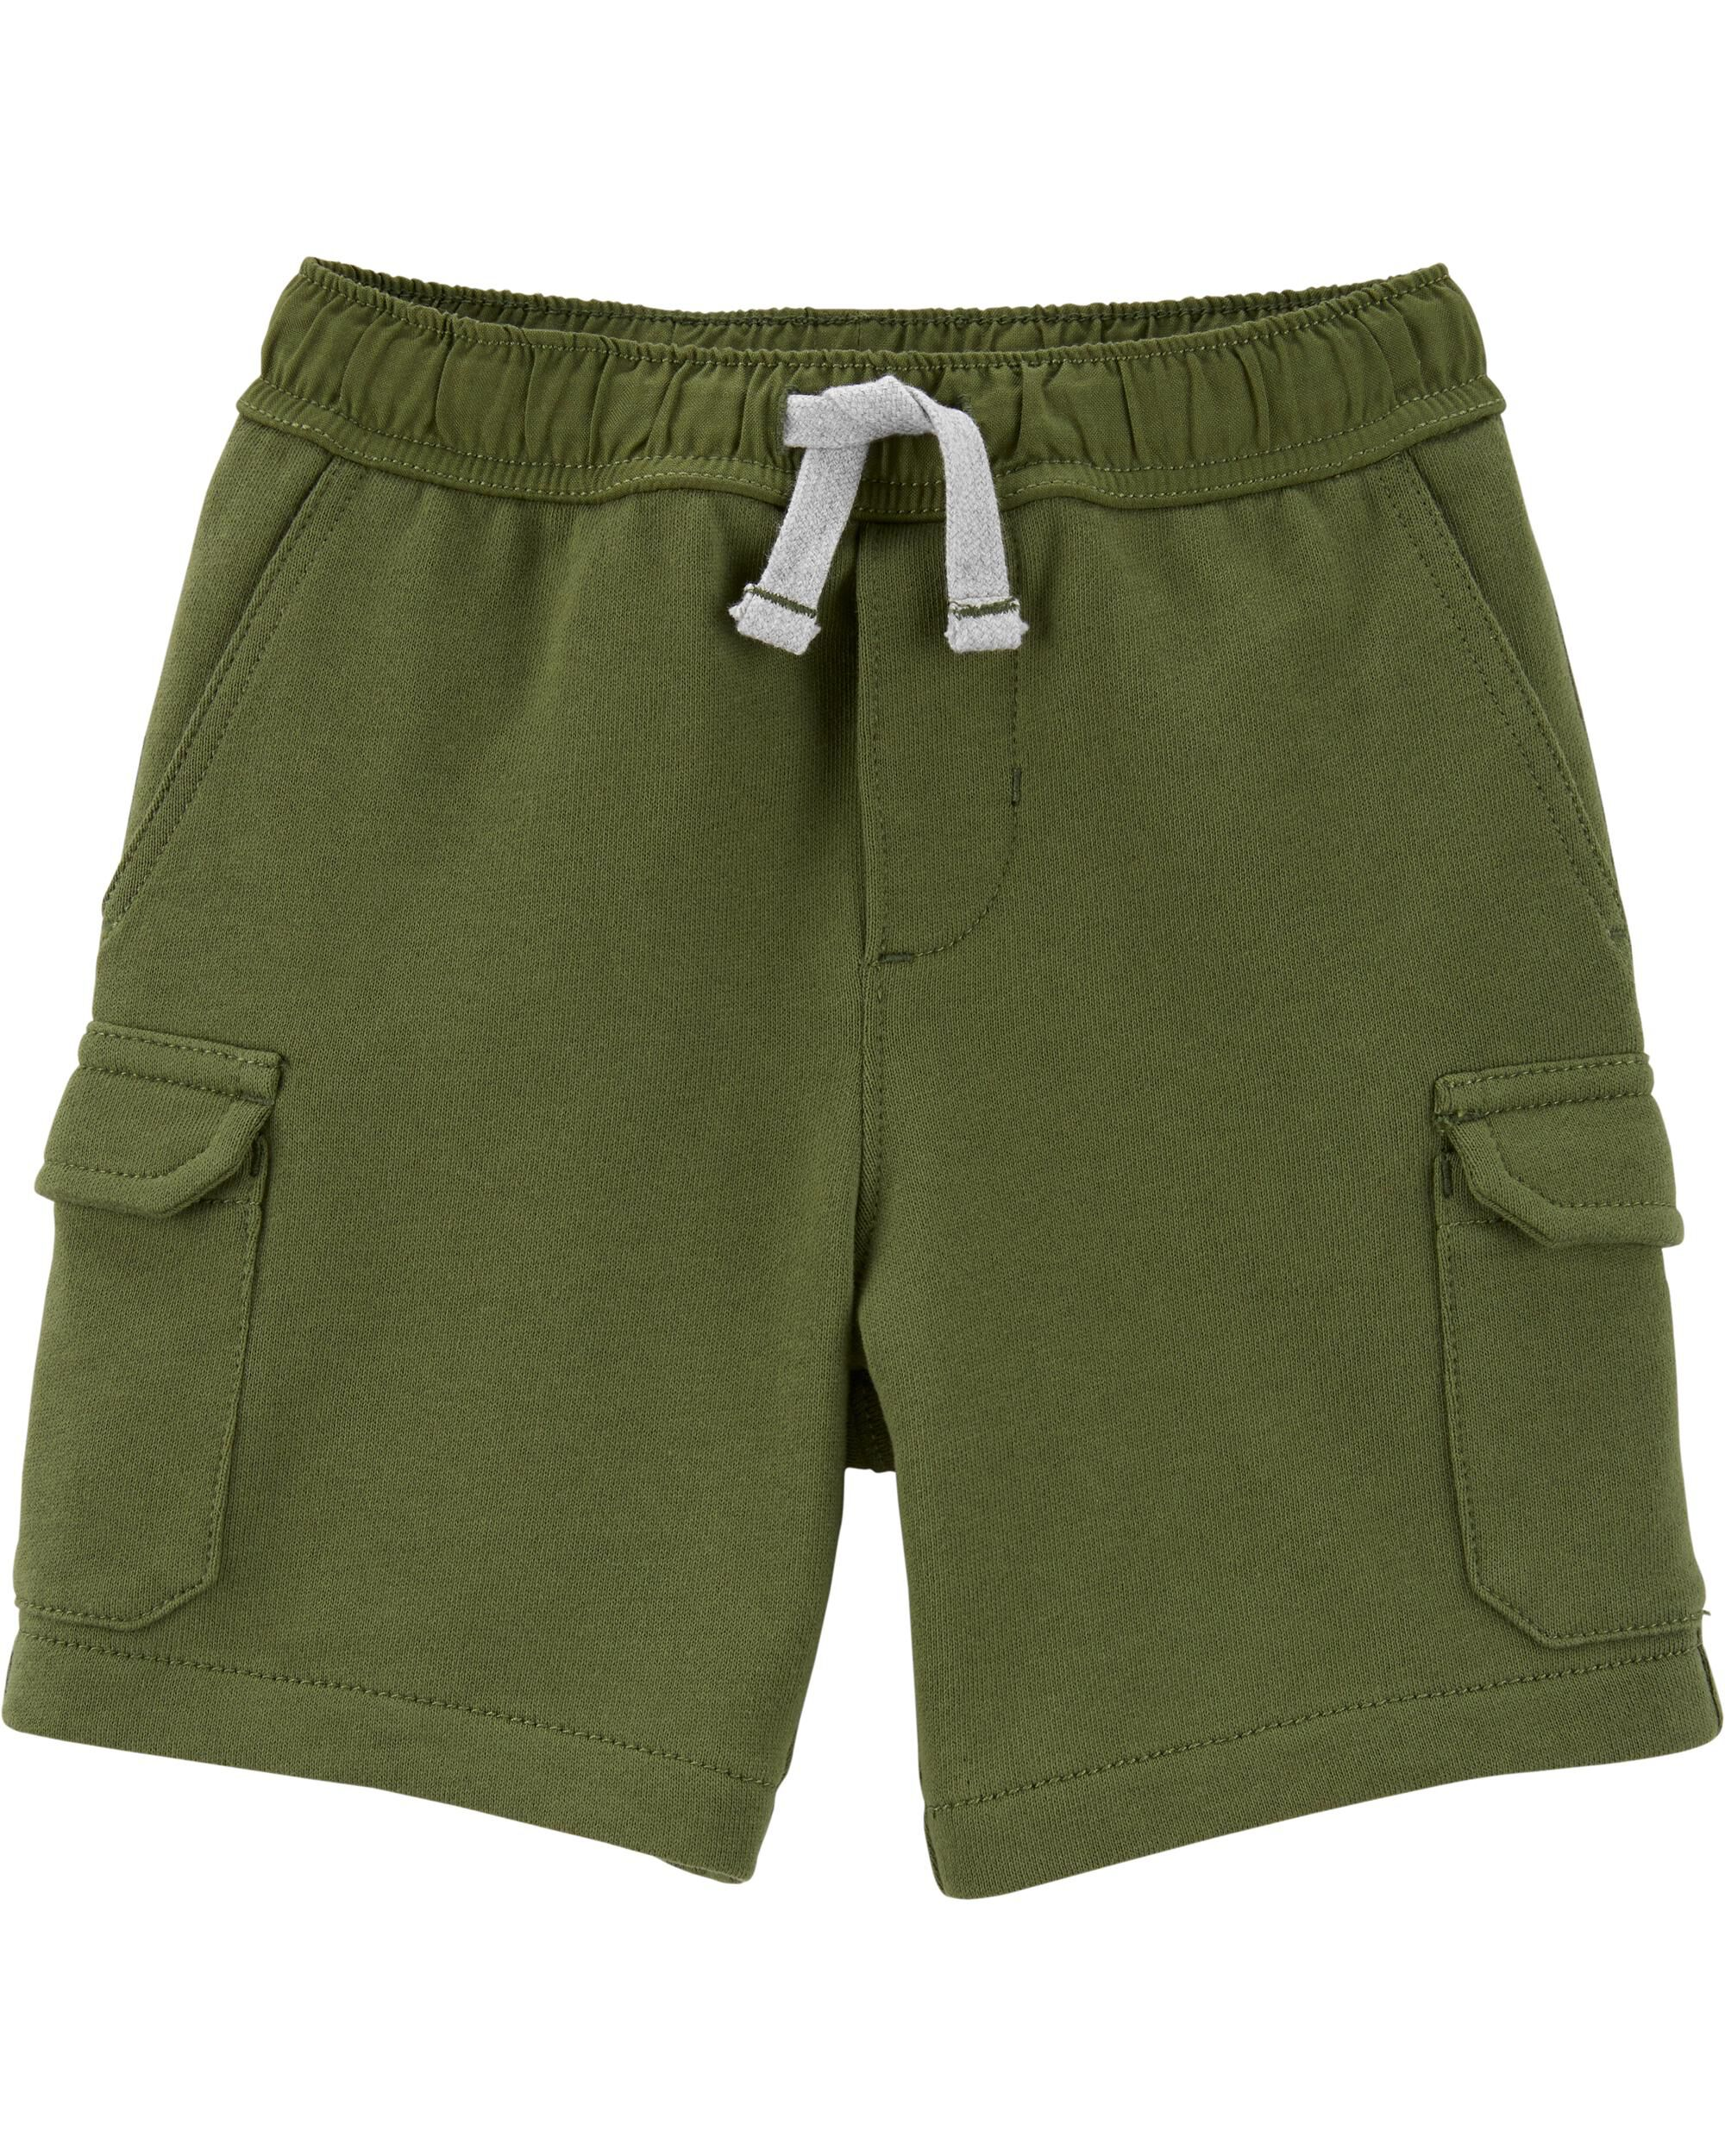 *Clearance*  Easy Pull-On Cargo Shorts